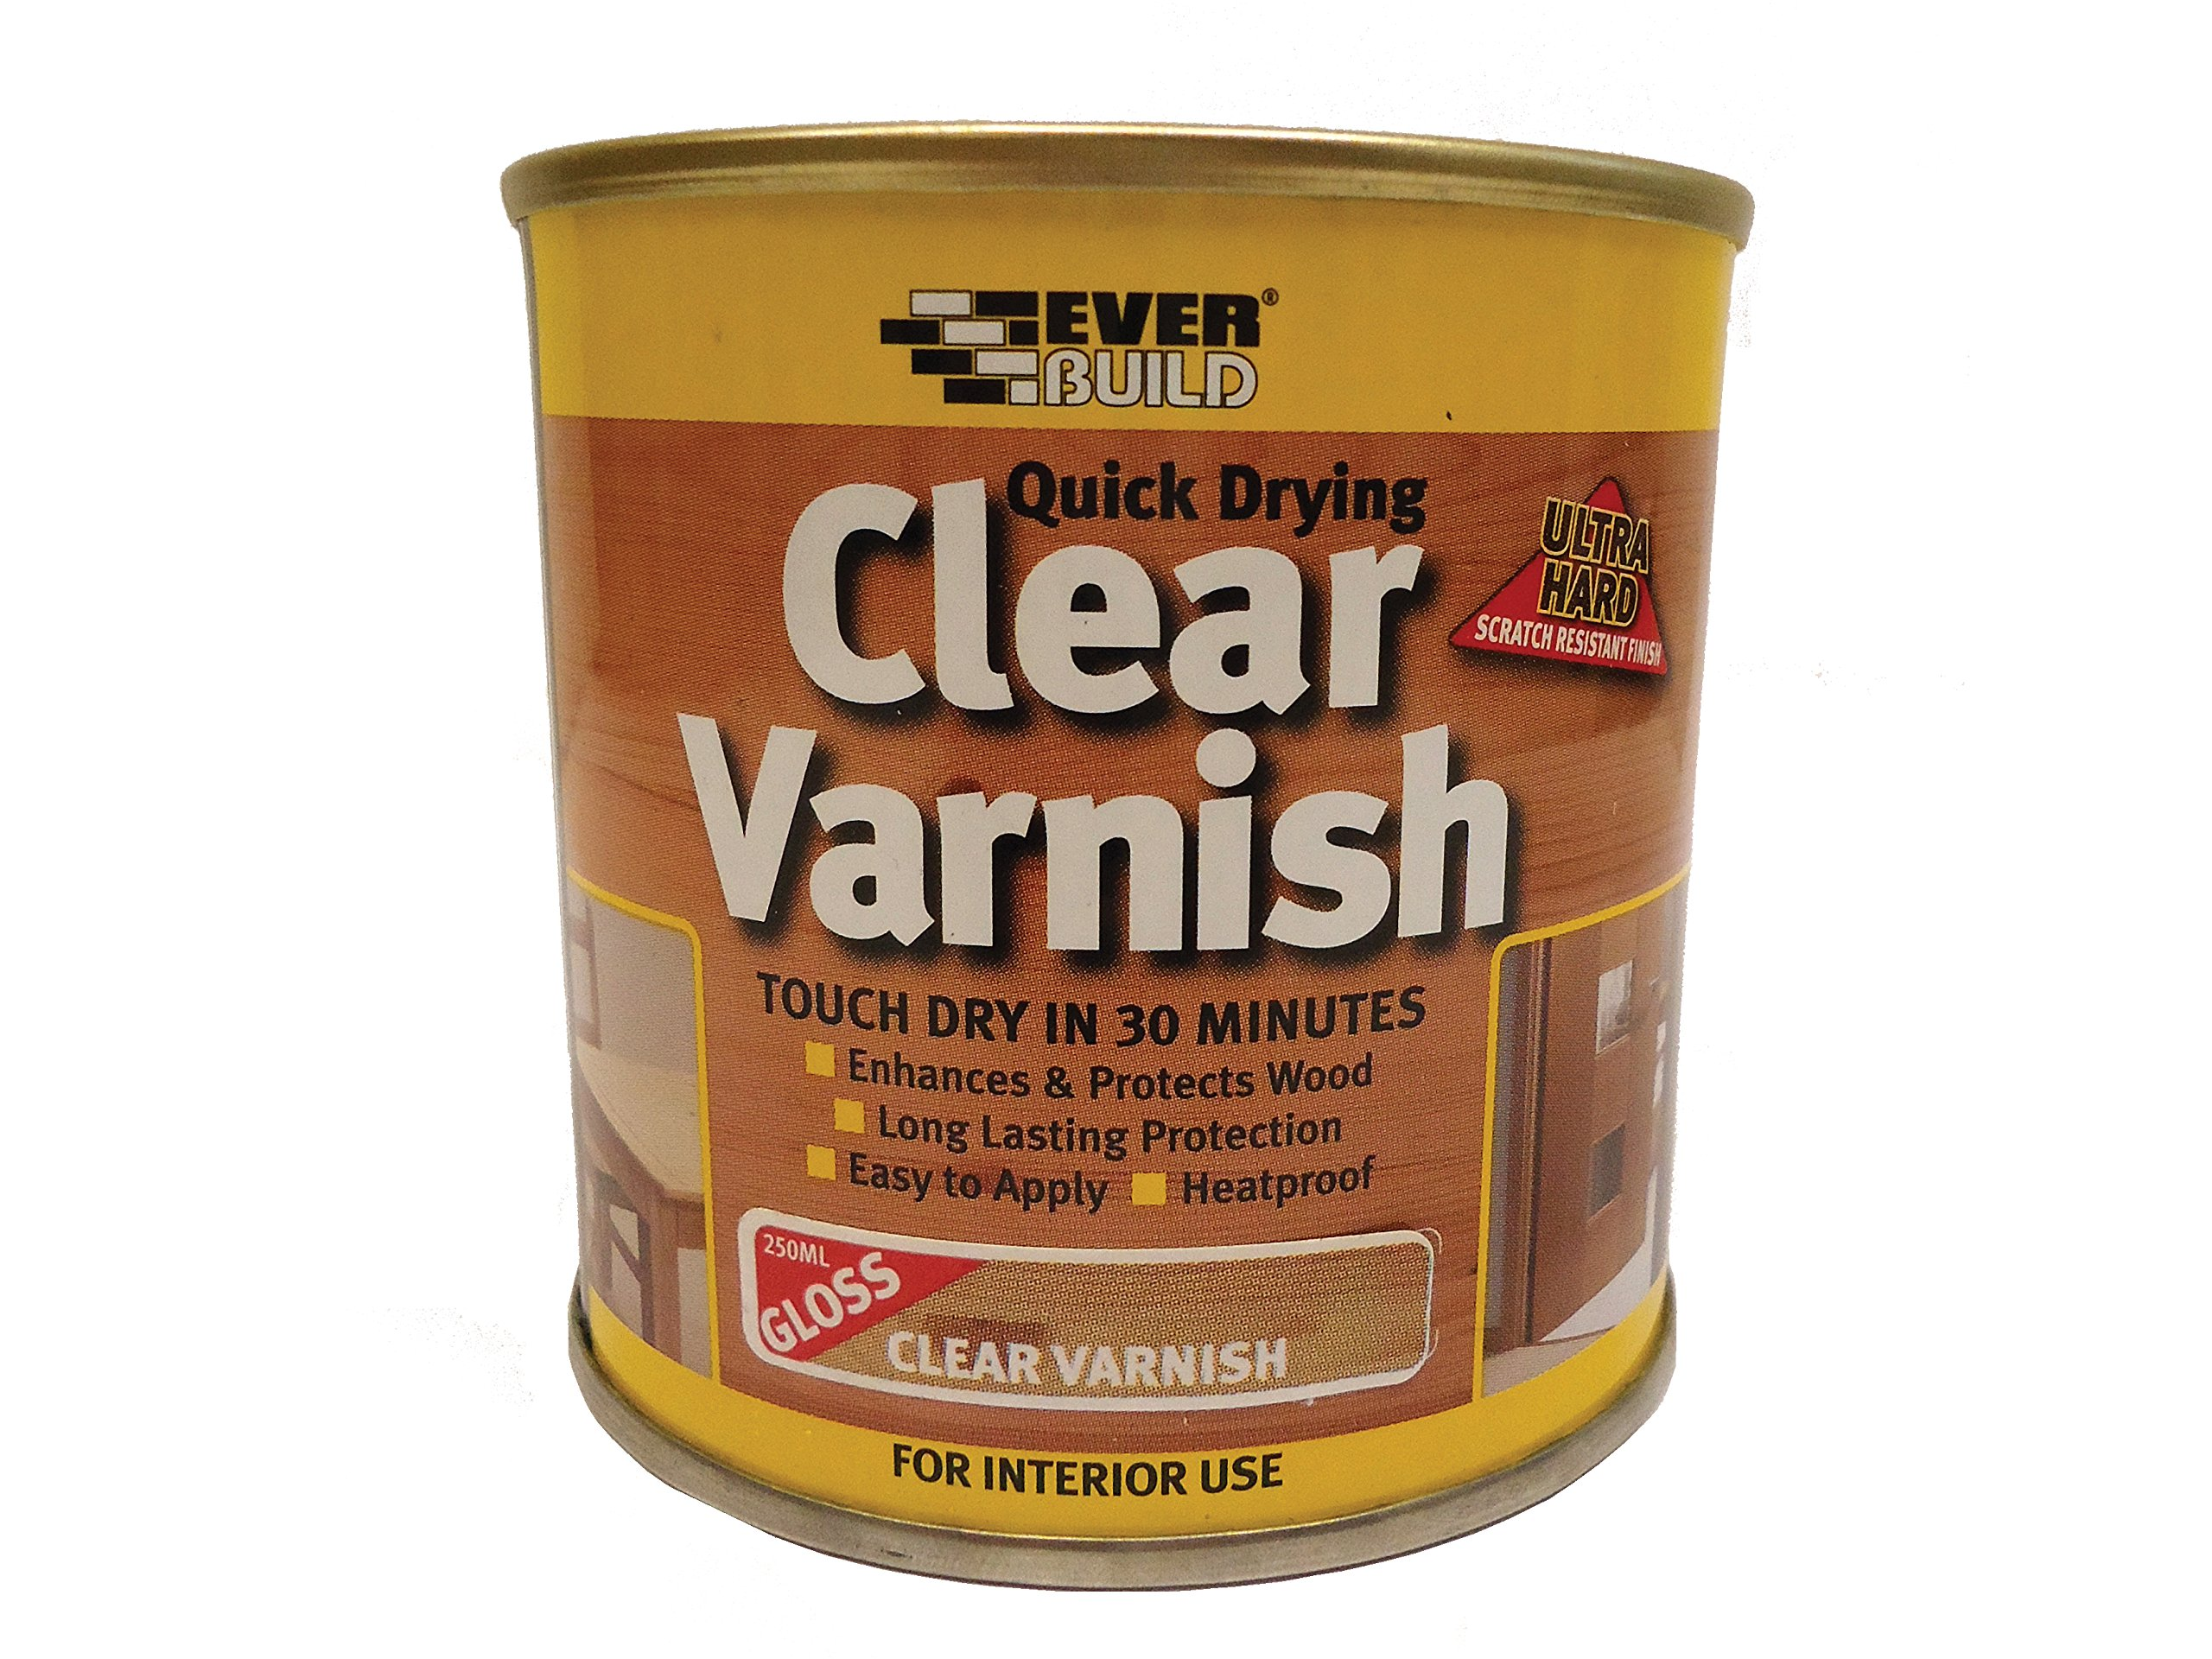 Clear varnish for stone lowes electric hot water heater for mobile home